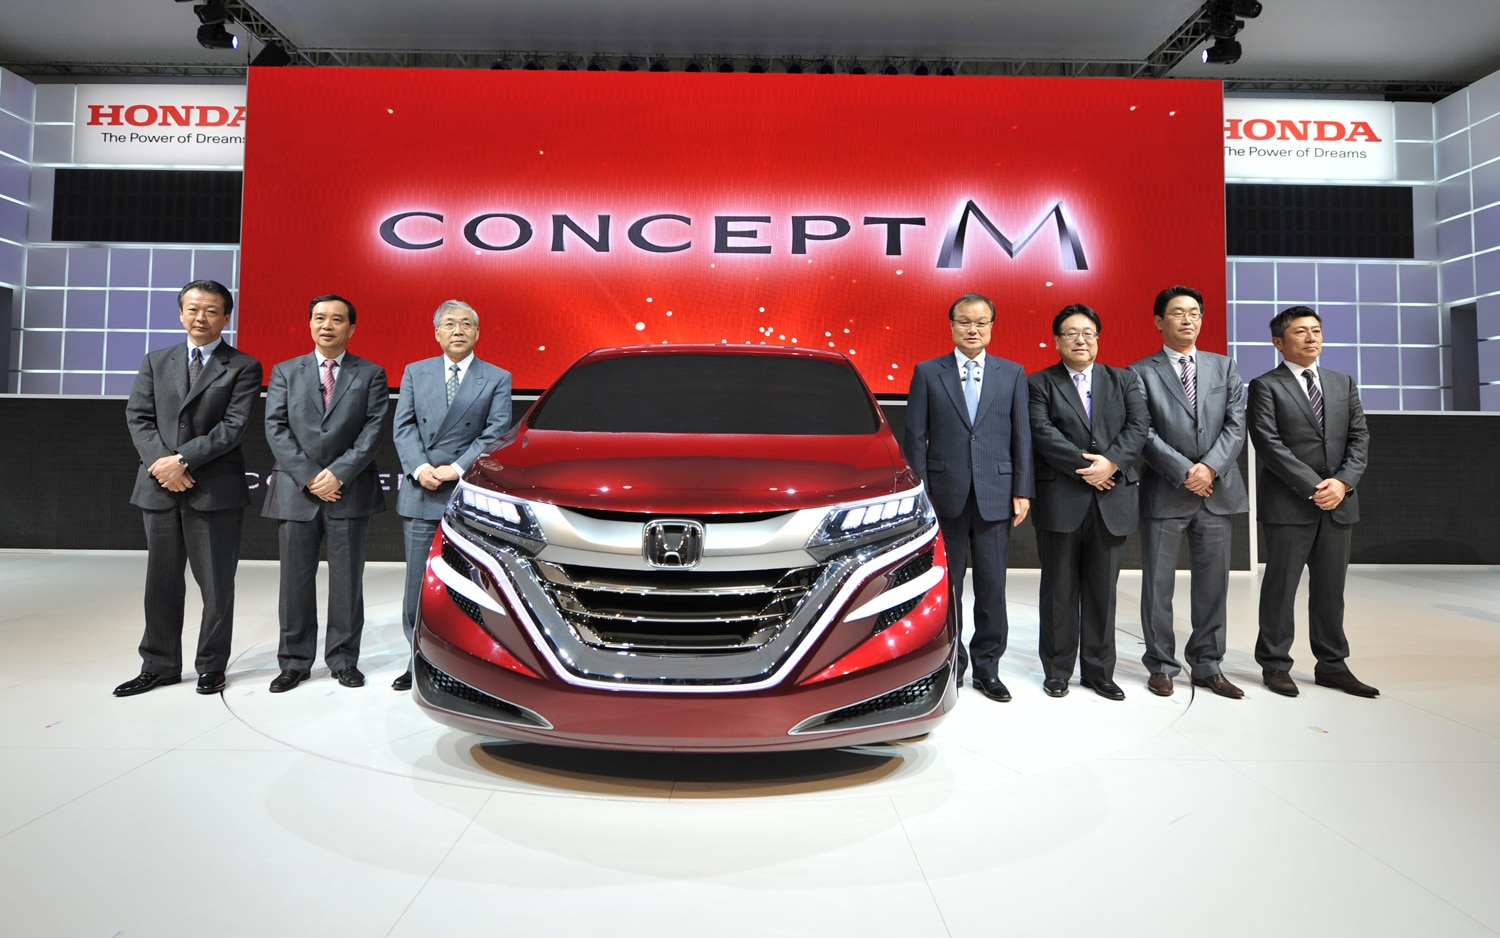 Honda Concept M Shanghai Executives1